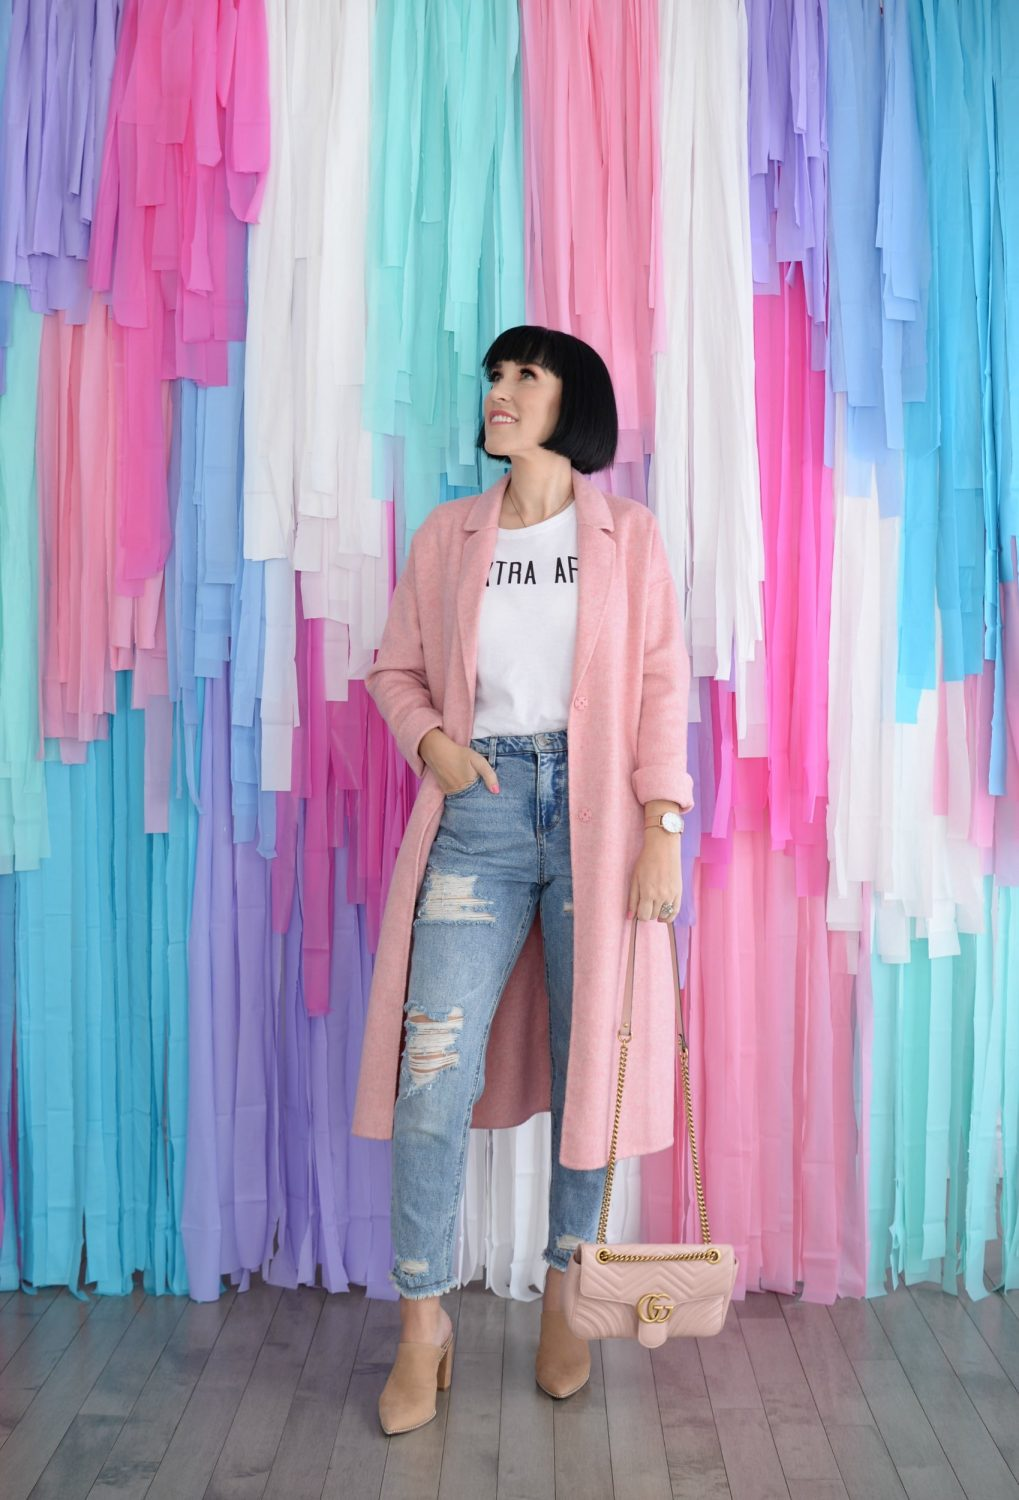 Tassel Wall, Pink Table Cloth Wall, Pink Winter Coat